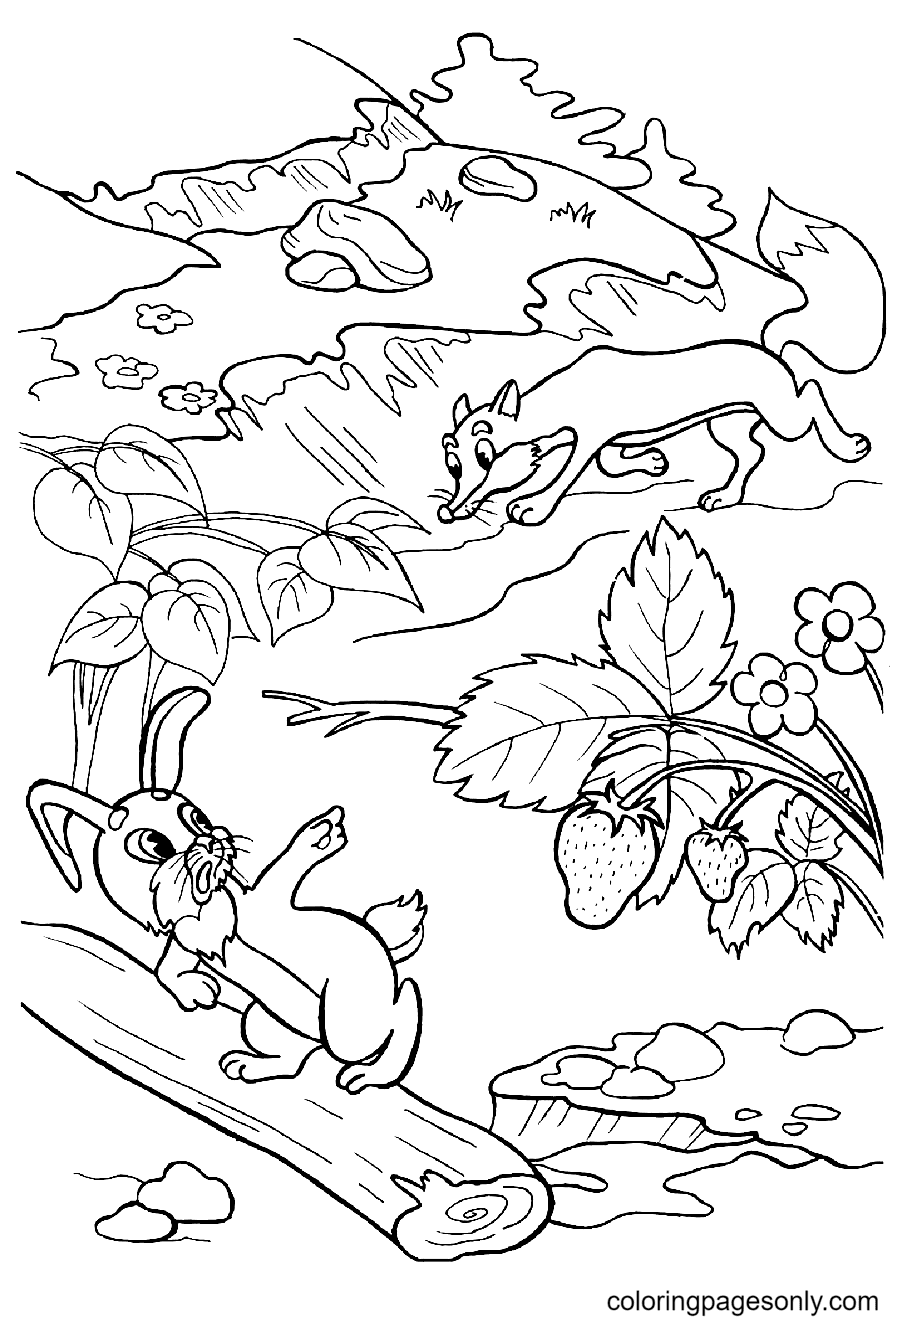 Bunny Runs Away From the Fox Coloring Page